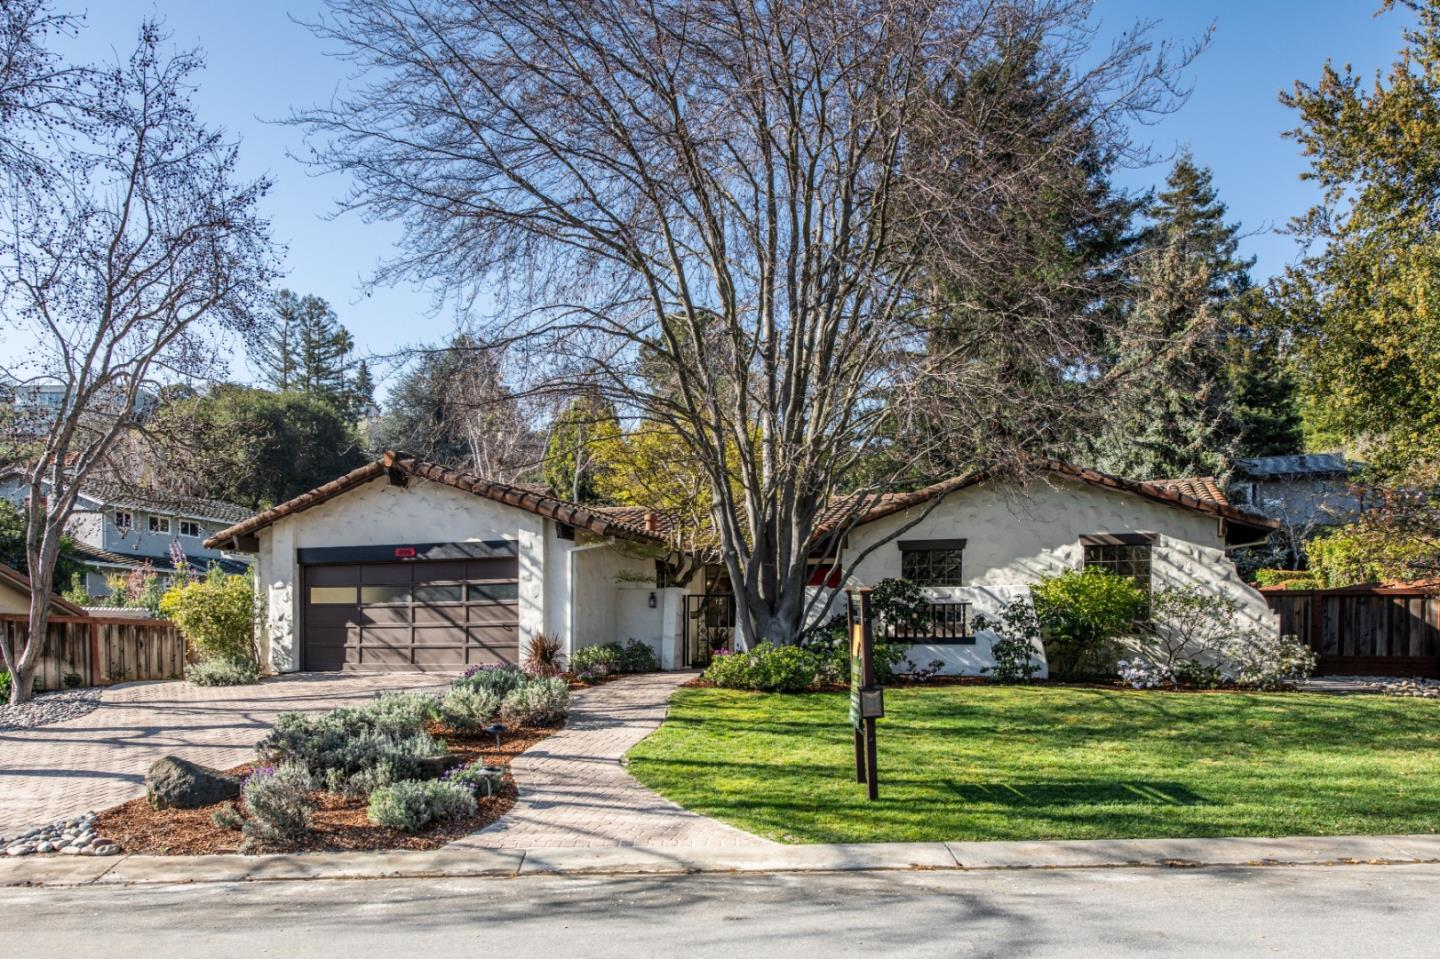 Charming Spanish Ranch on a quiet street close to downtown. Cozy front and back courtyards. Landscaped gardens with mature trees. Near to Google, Apple & Stanford. Award Winning Los Altos School District.